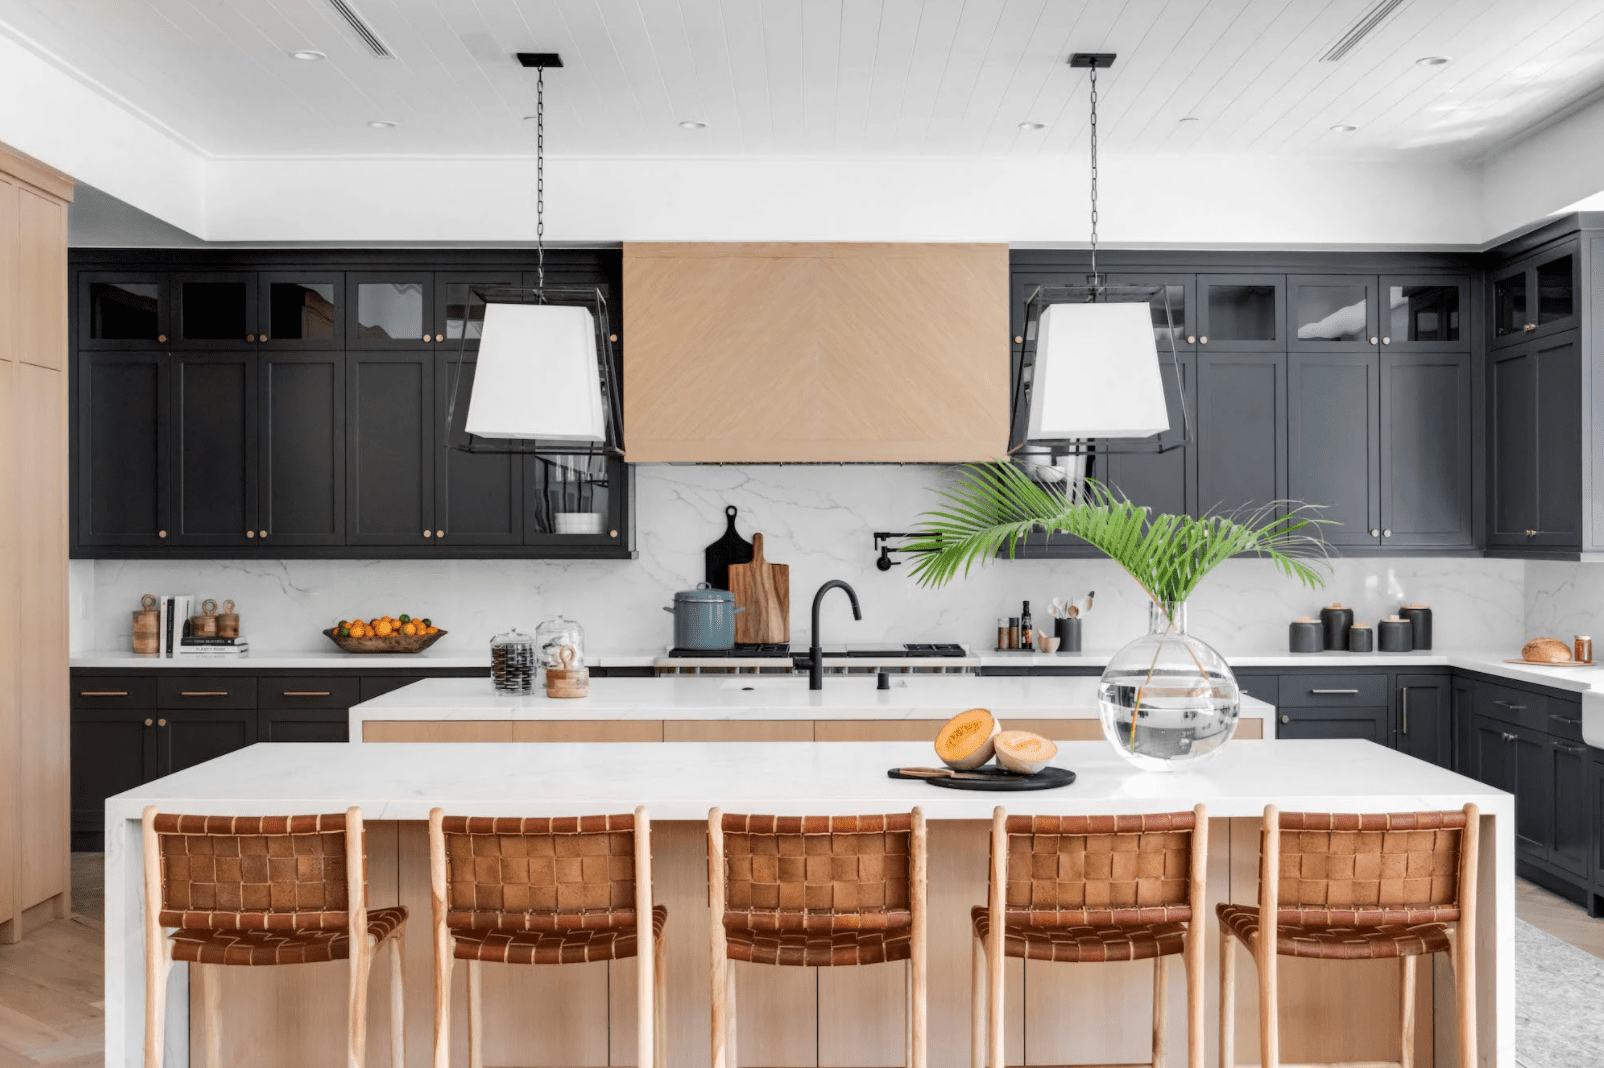 An open-concept kitchen with two kitchen islands